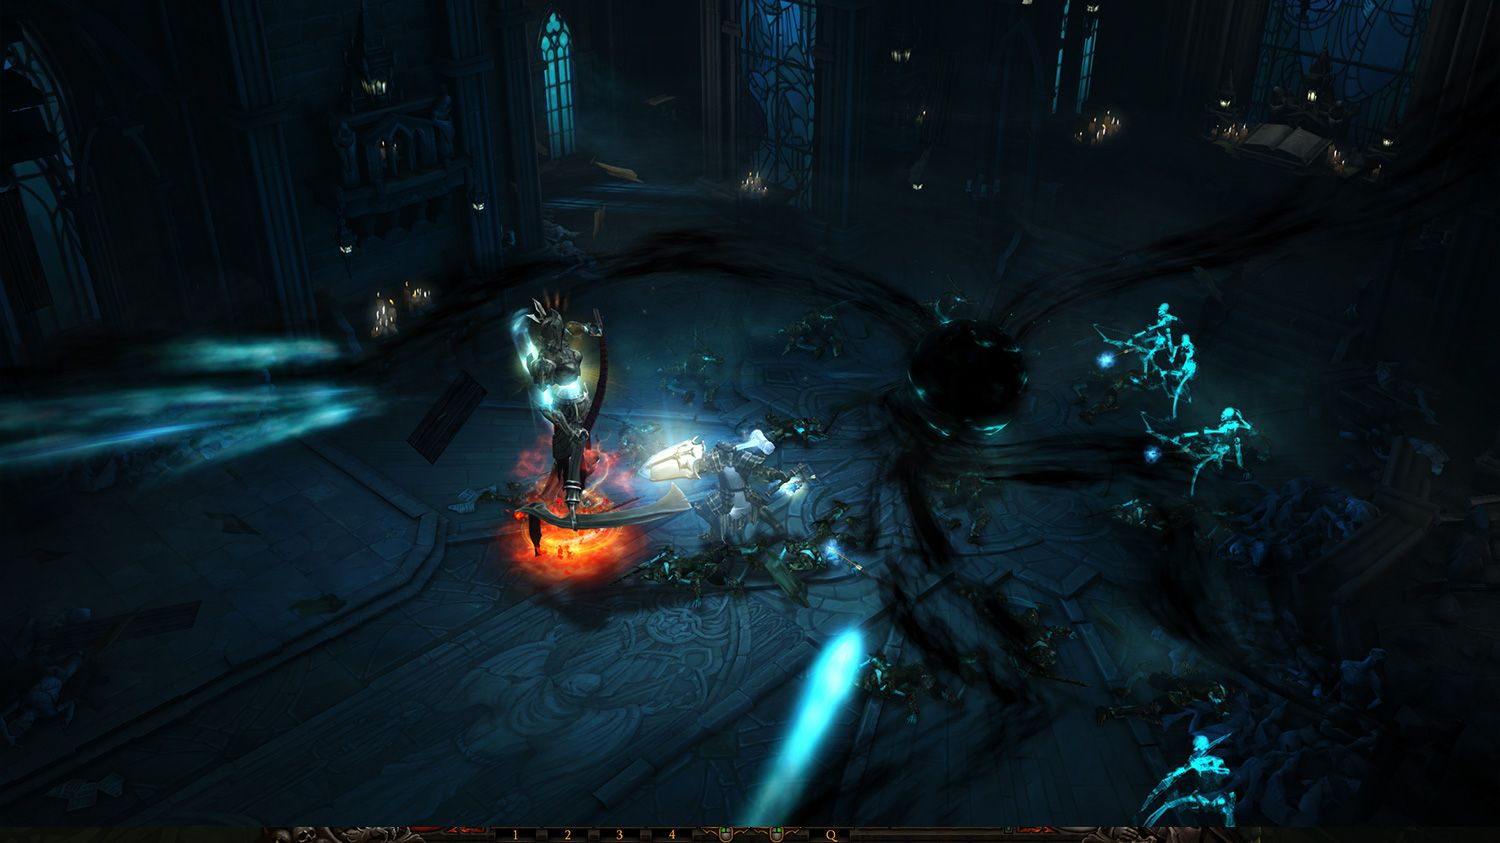 Diablo III Battlechest (PC) - 5